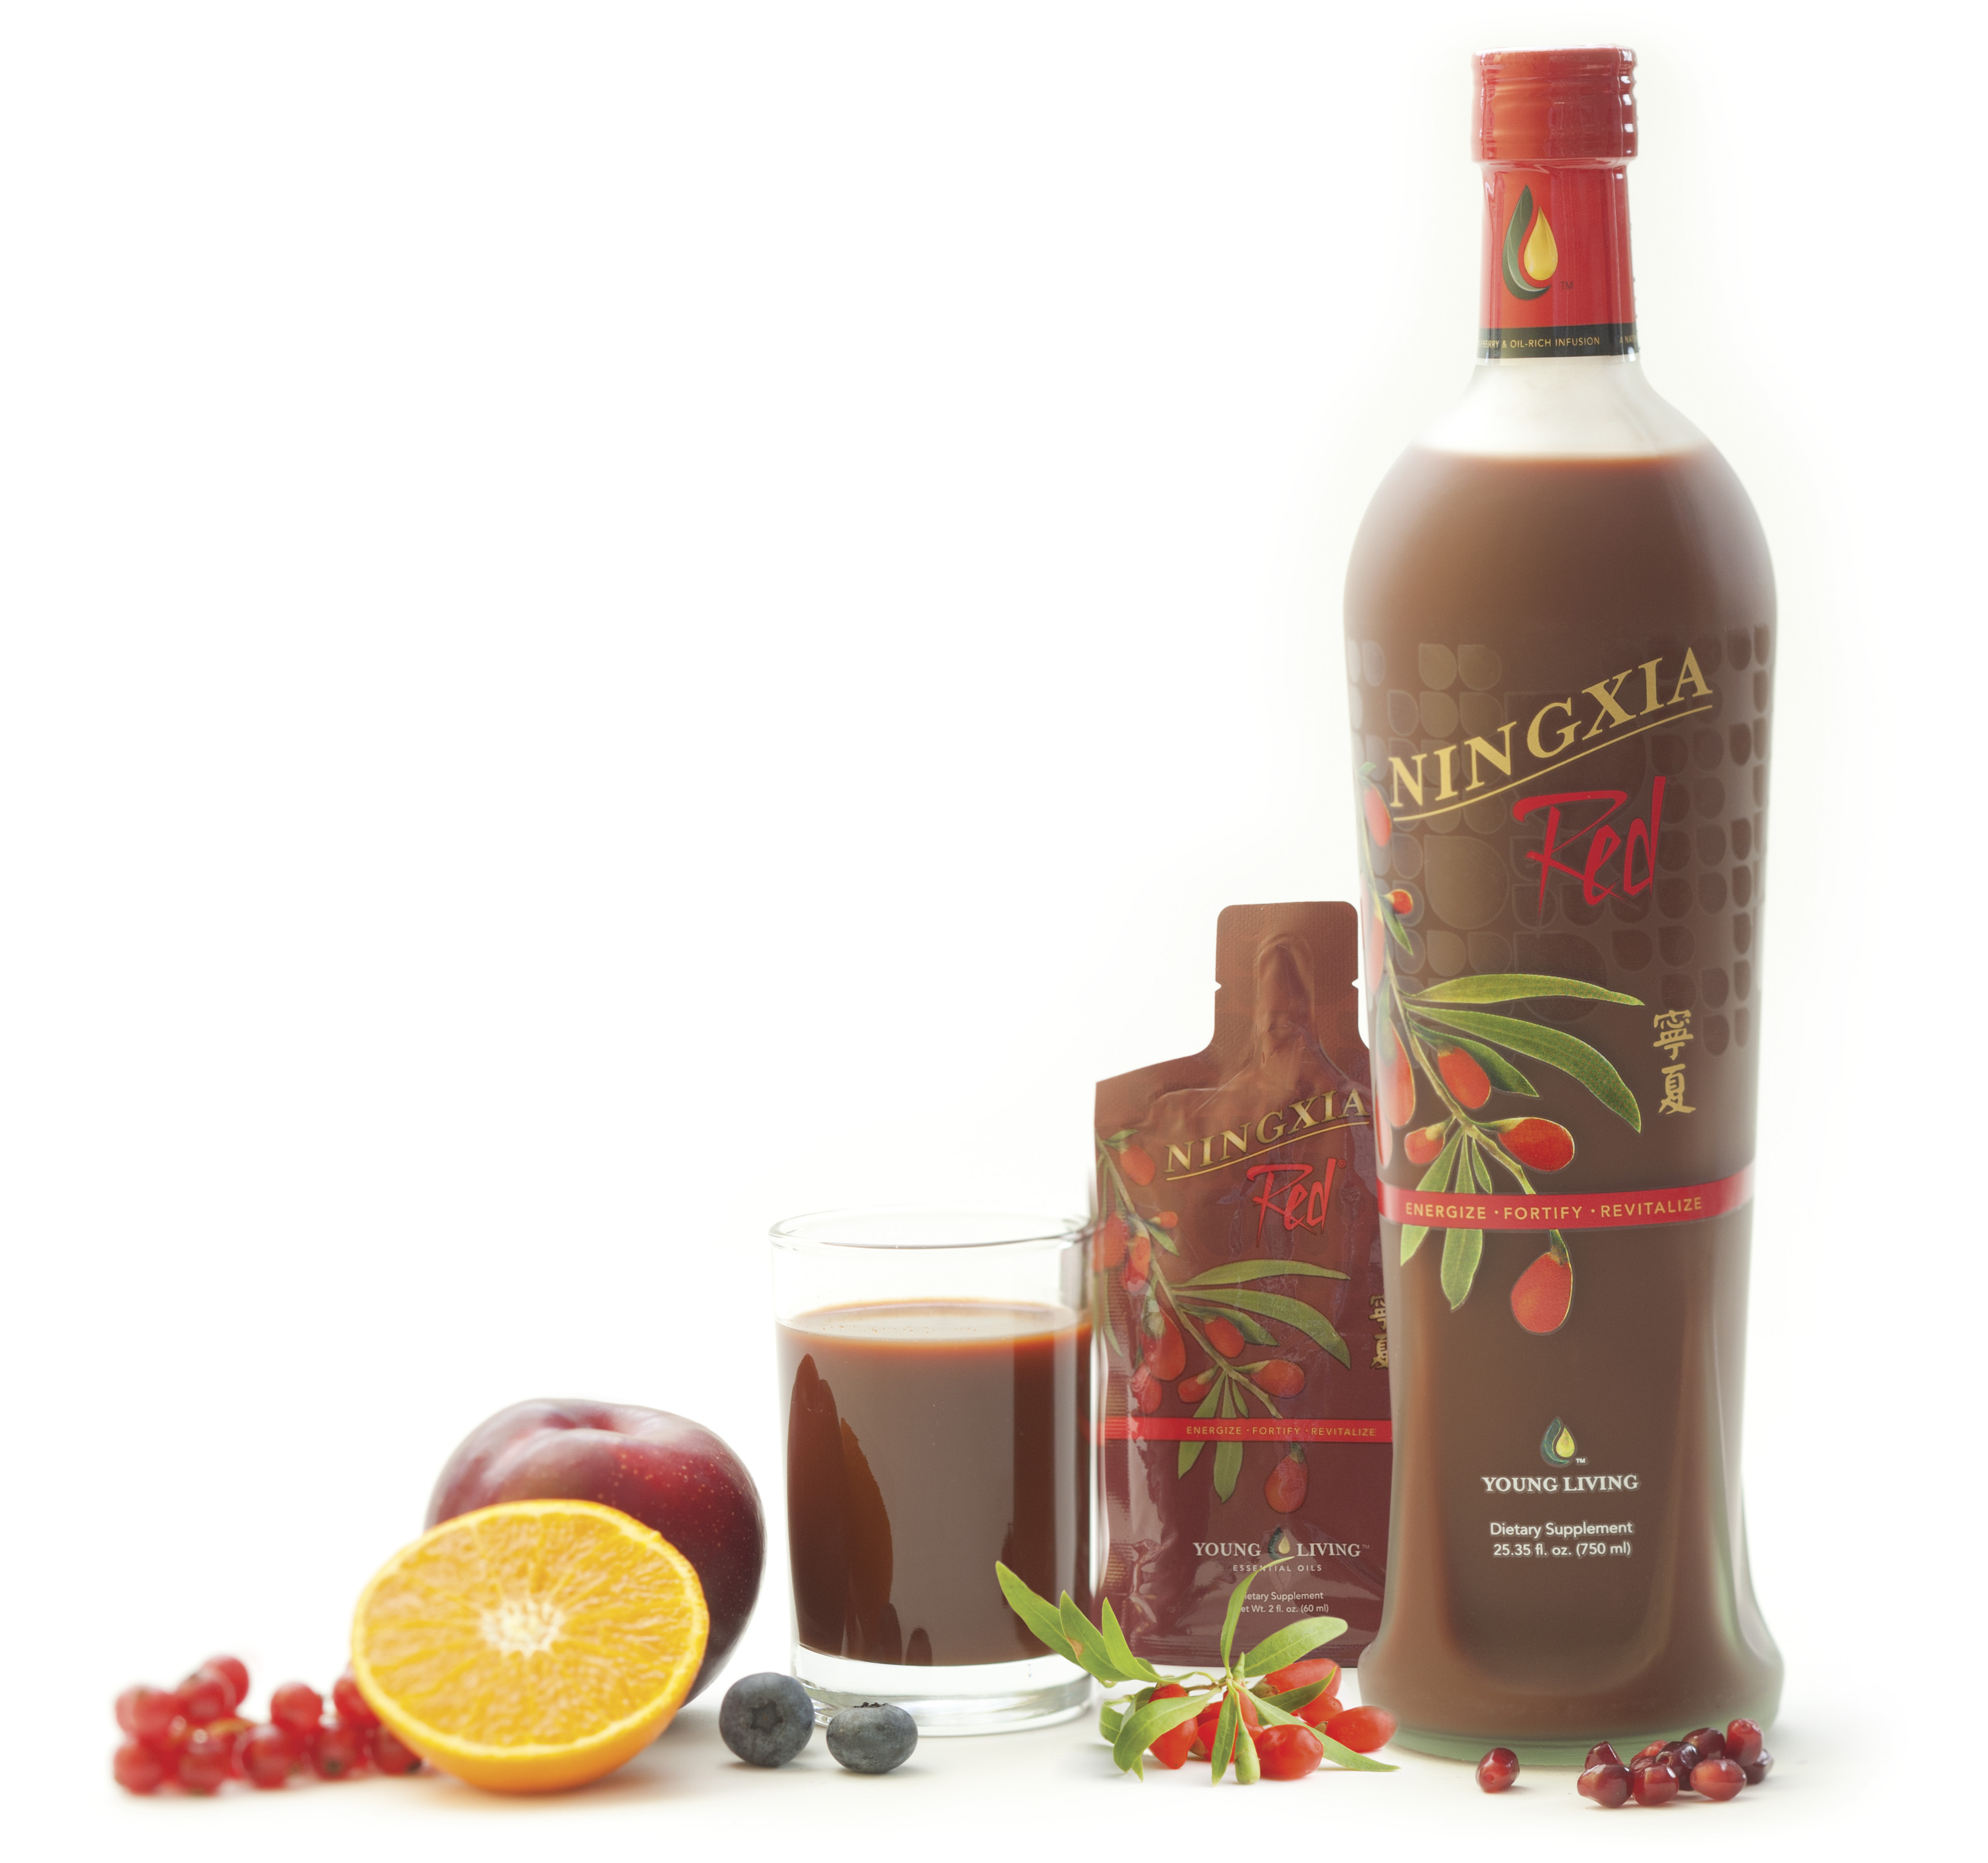 young living ningxia red reviews